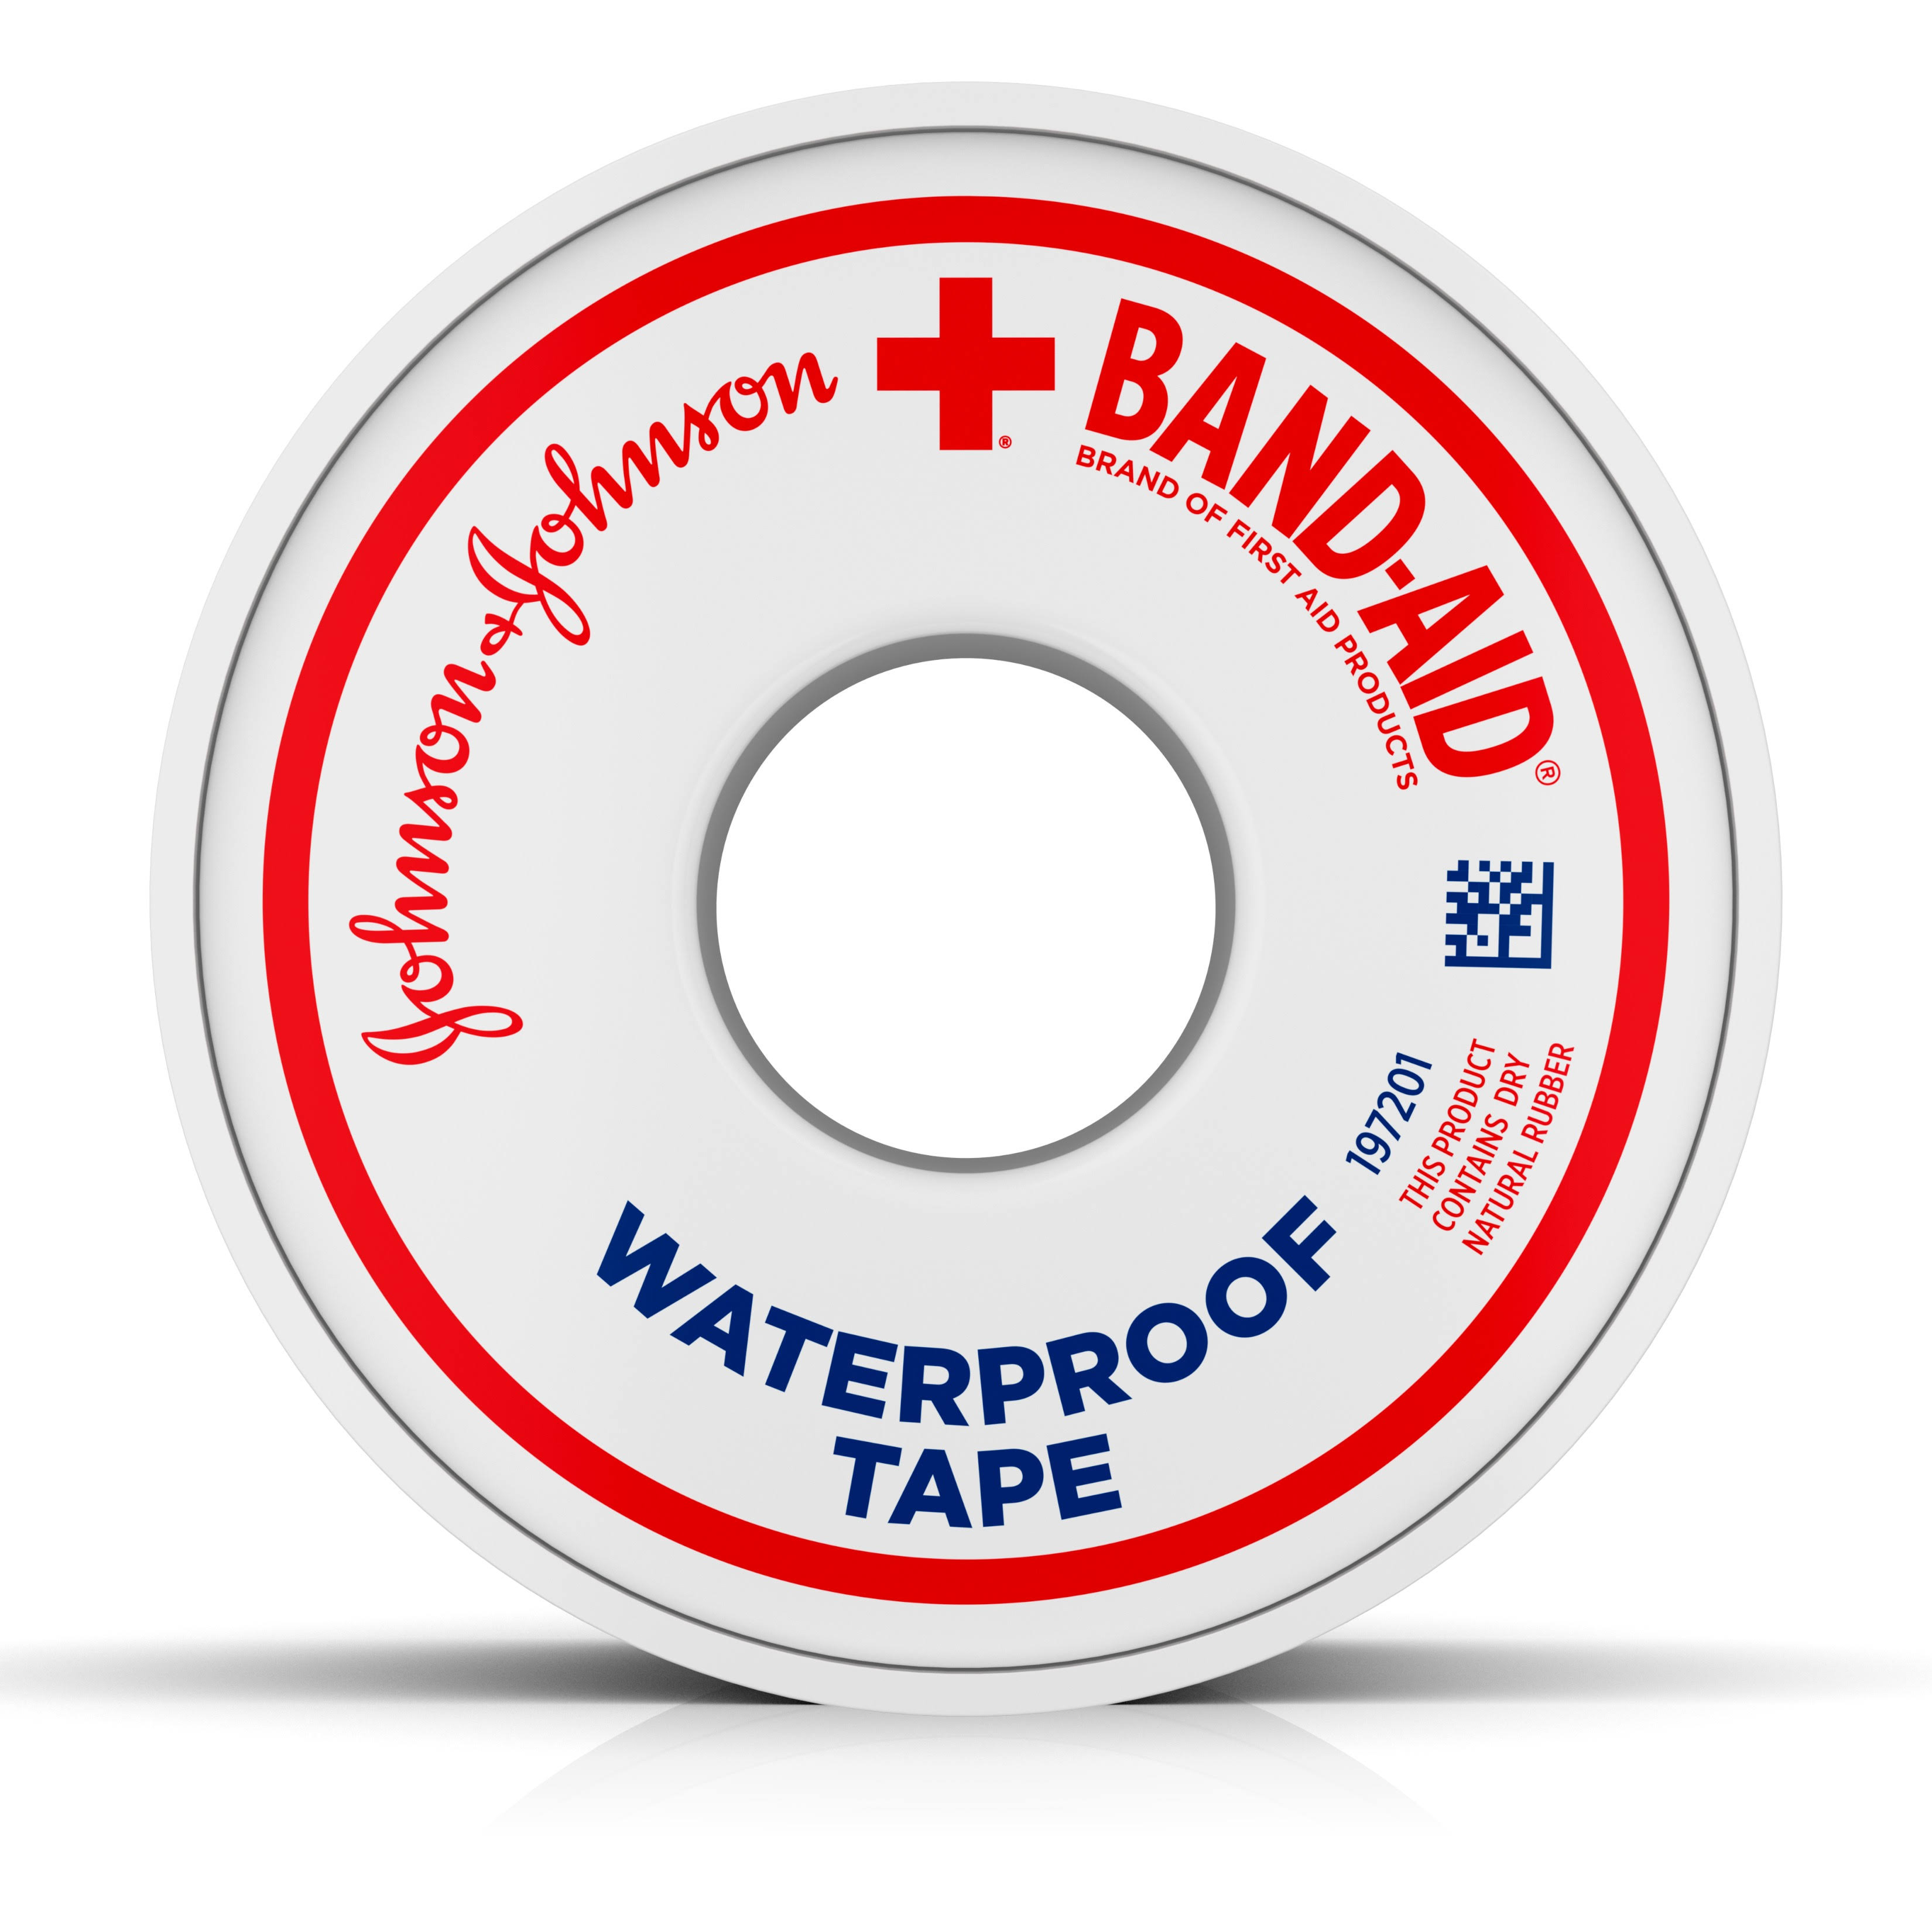 Johnson and Johnson Band-Aid Waterproof Tape